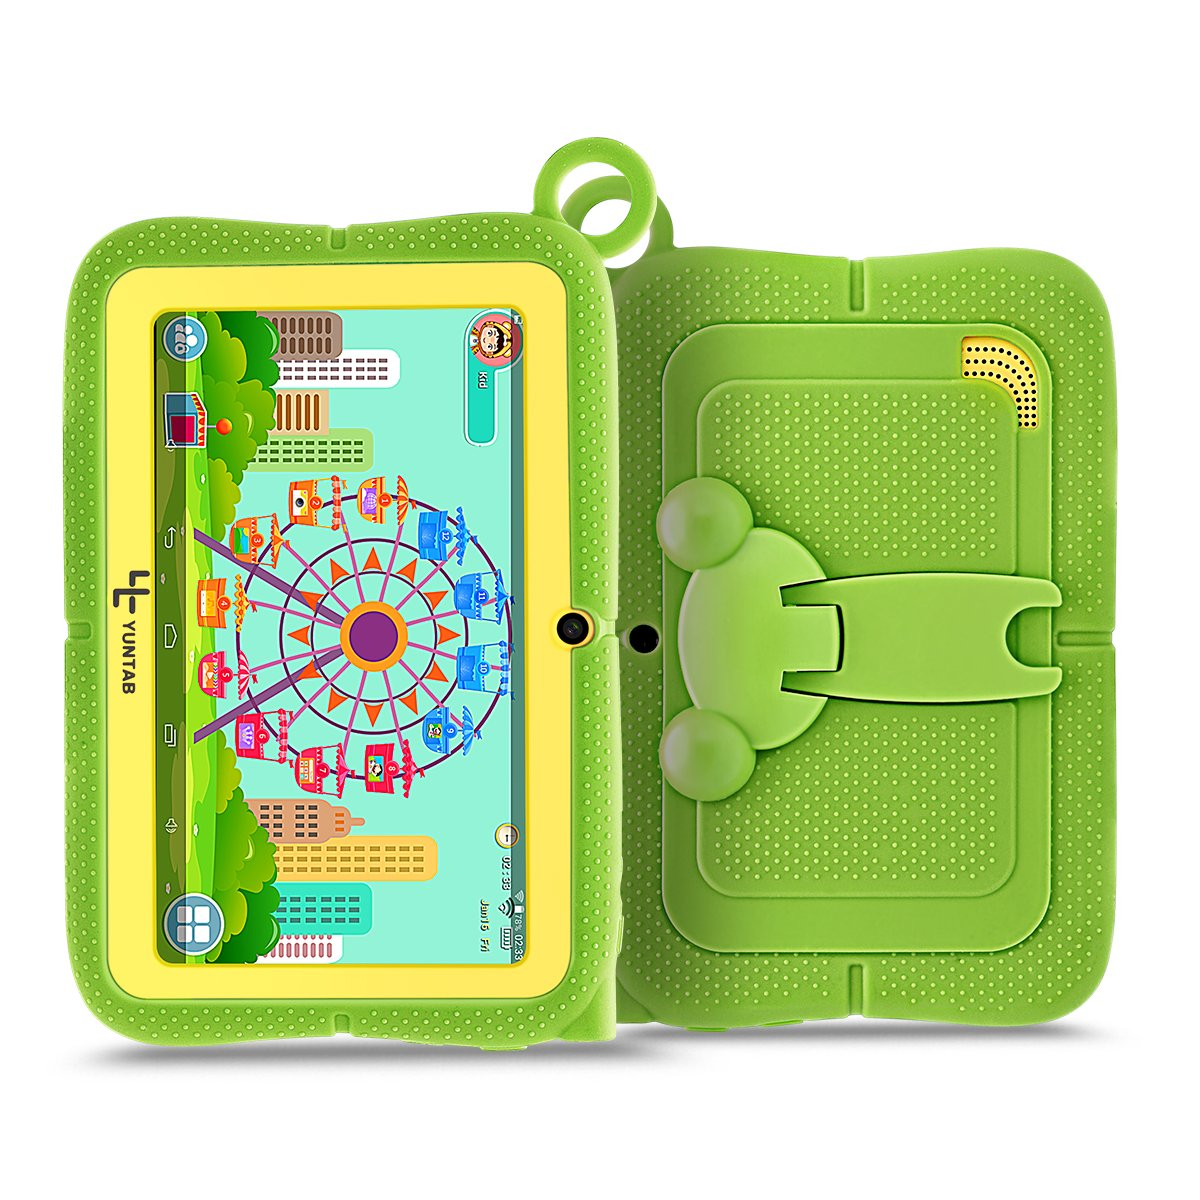 Yuntab Q88R 7 inch Kids Edition Tablet with Premium Parent Control iWawa Kids Software Pre-Installed, Android, Quad Core, 8 GB, WiFi, Bluetooth, Dual Camera, Protecting Silicone Case (GREEN) by Yuntab